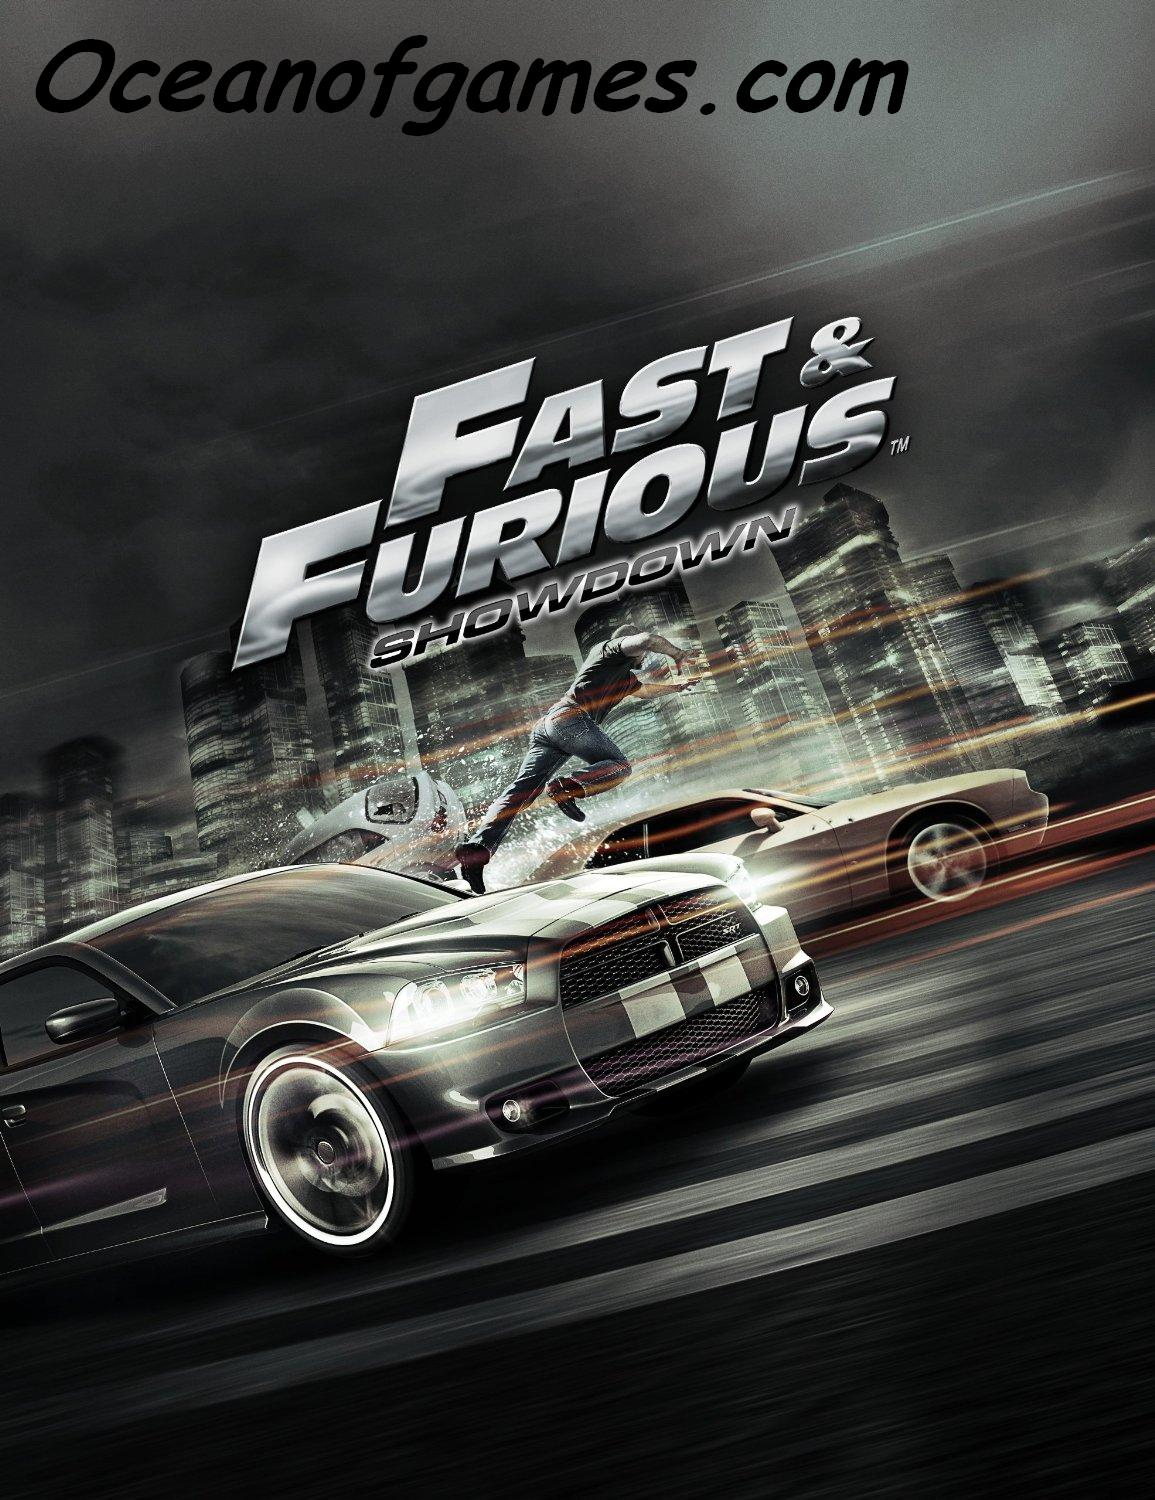 Fast and Furious Showdown Free Download, Fast and Furious Showdown Free Download